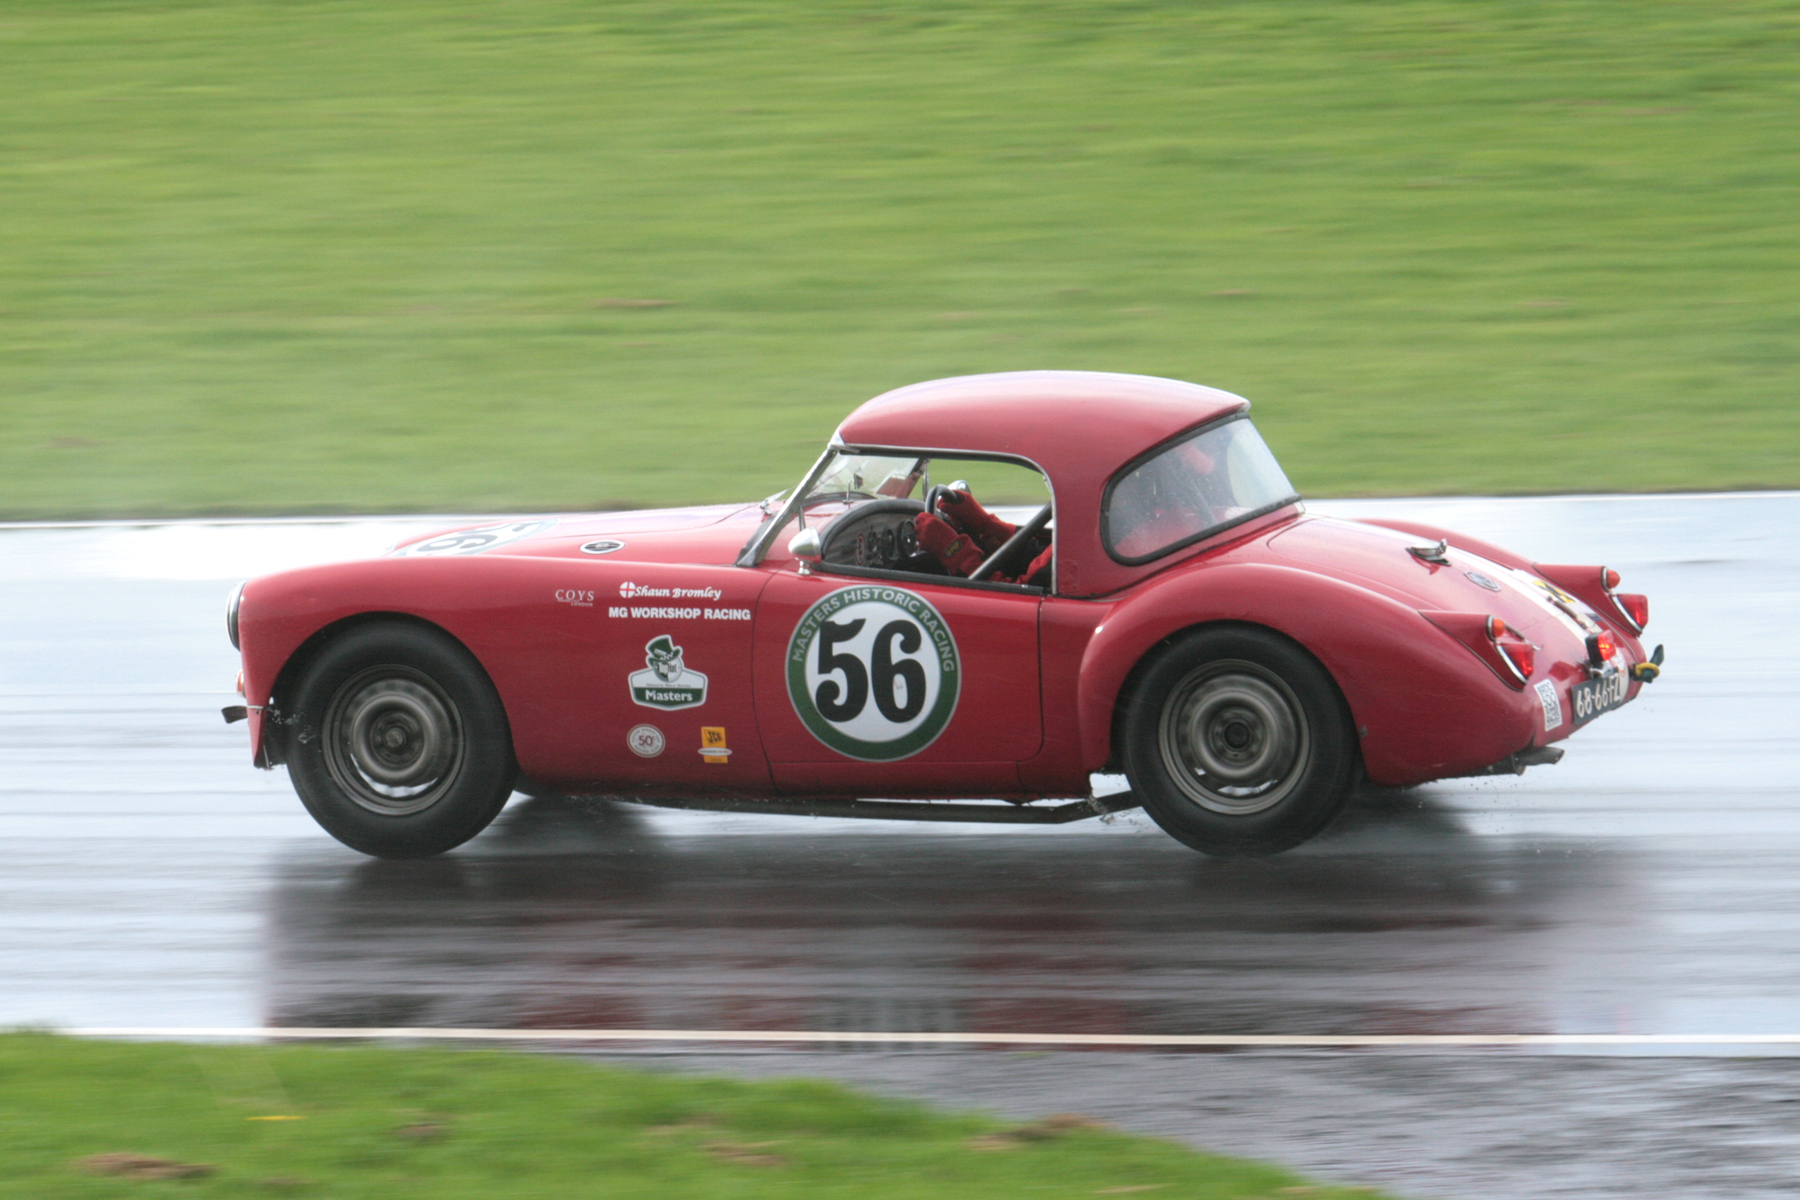 Shaun Bromley in his MGA, which he shared with his son, Josh                           Photo - John Turner